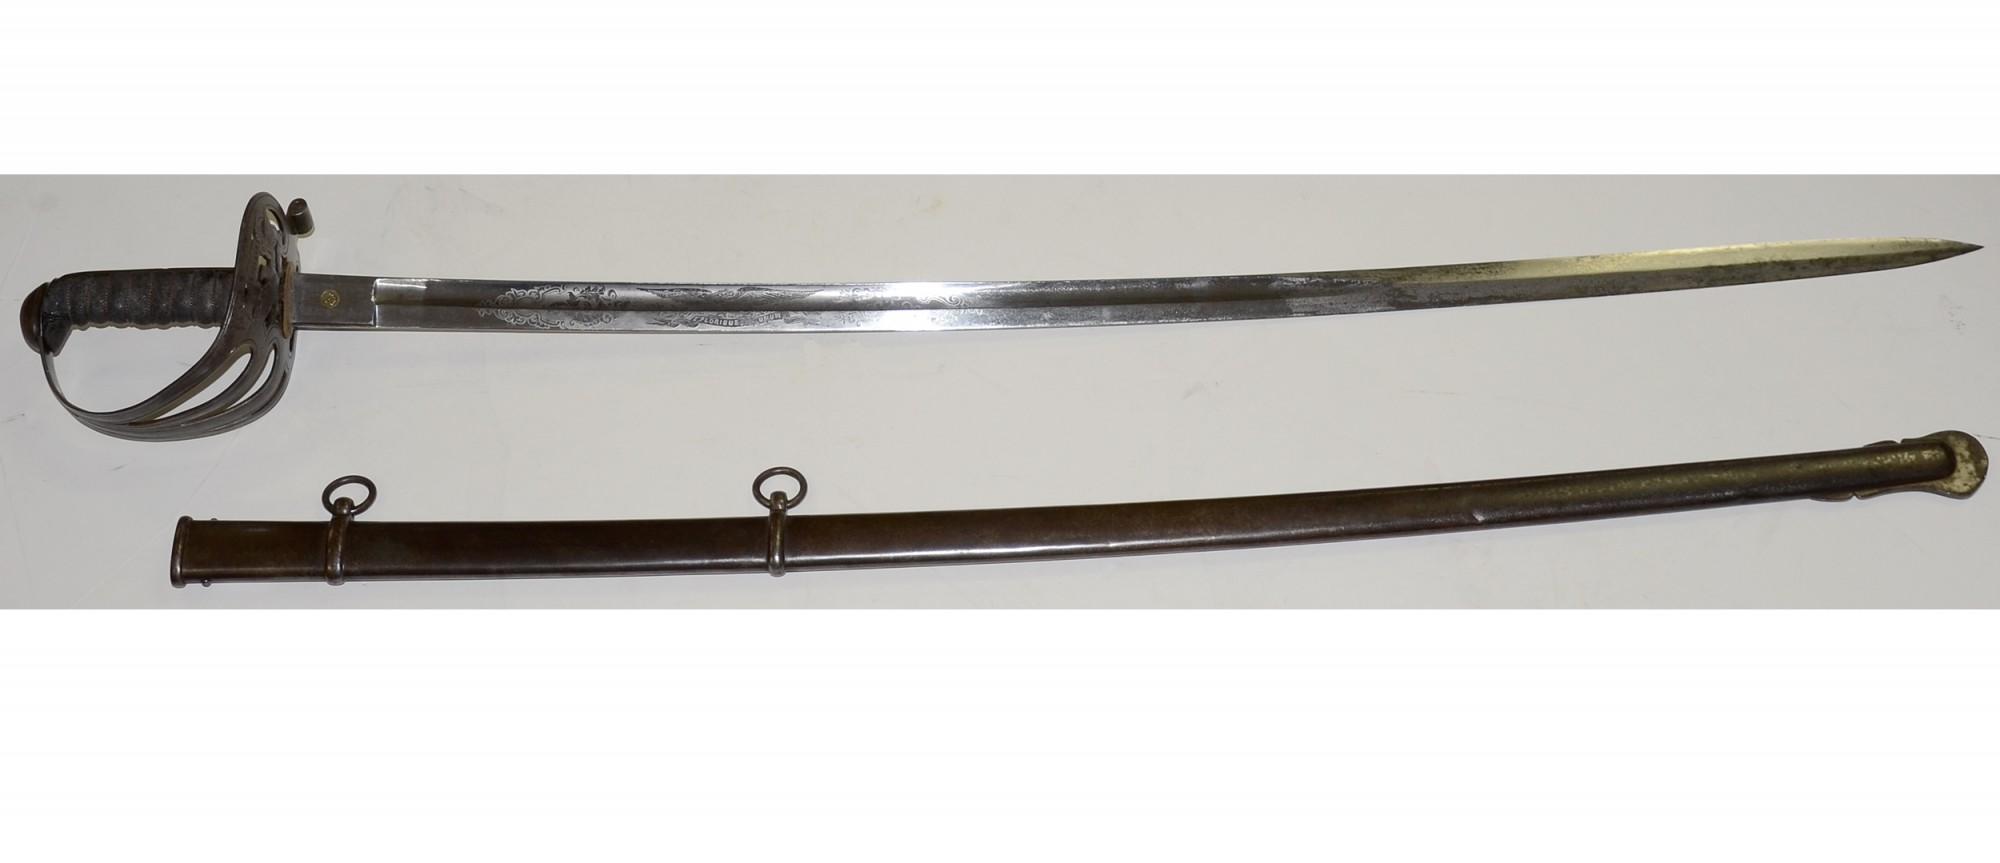 IMPORTED FIELD AND STAFF OFFICER'S SWORD — Horse Soldier